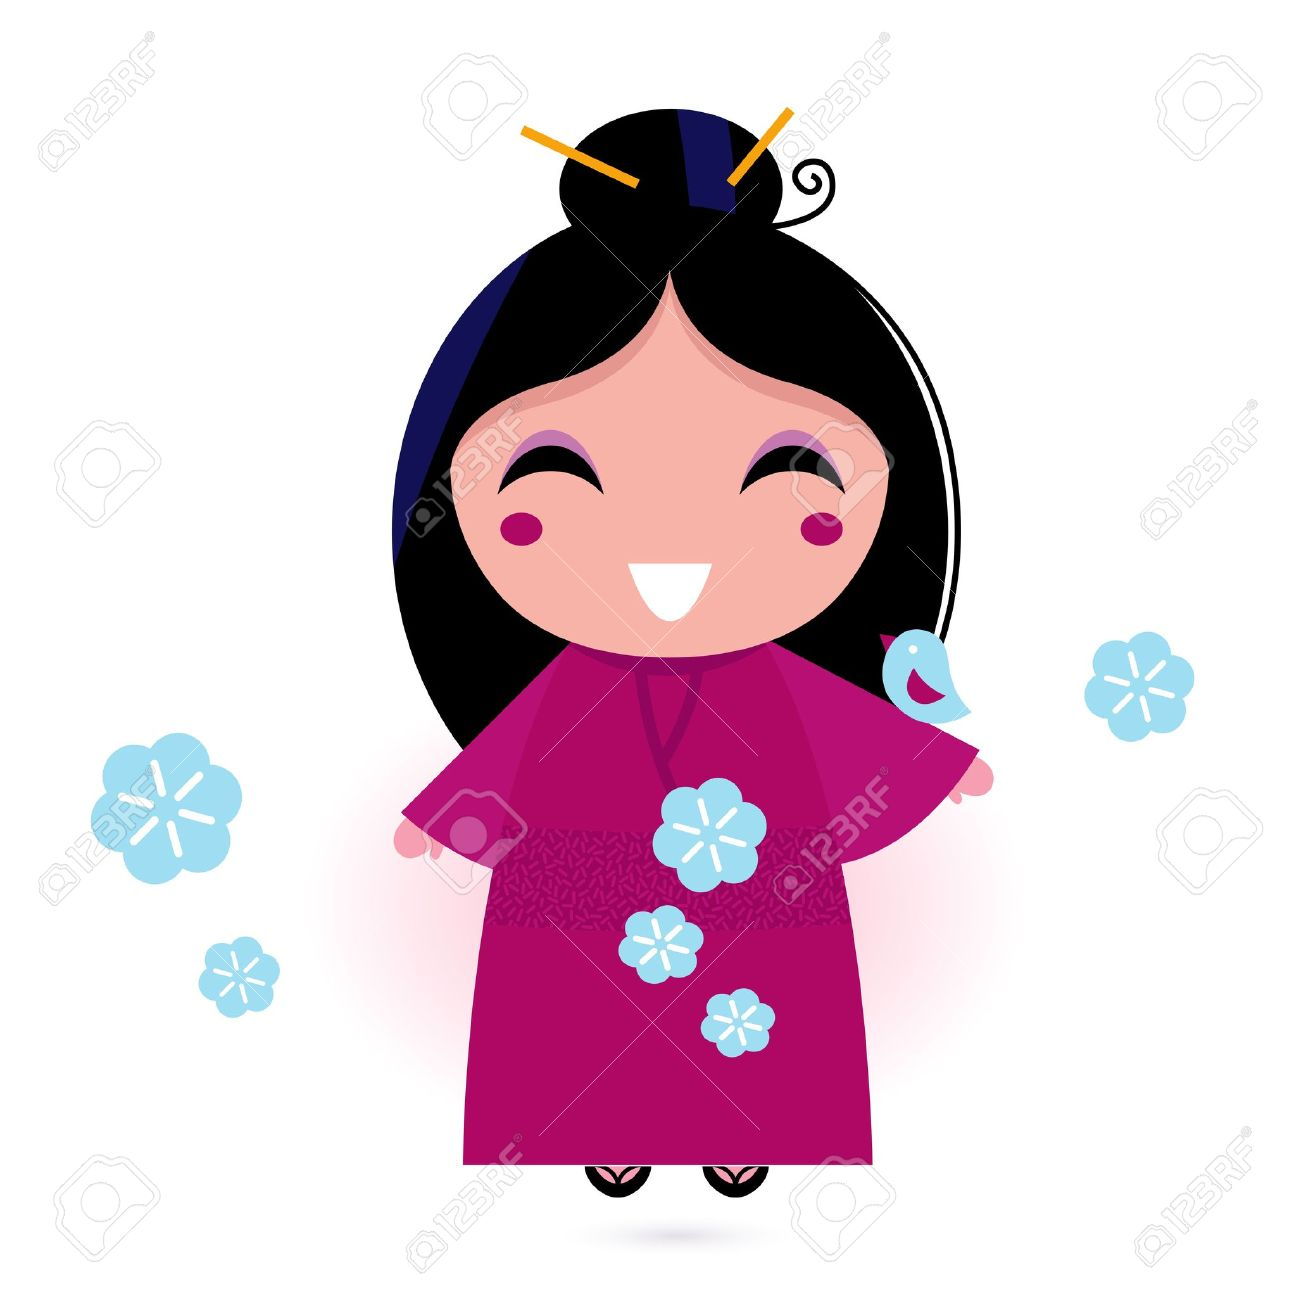 Animated cute girl characters clipart png black and white Cute Japanese Cartoon Characters Clipart   Free download best Cute ... png black and white